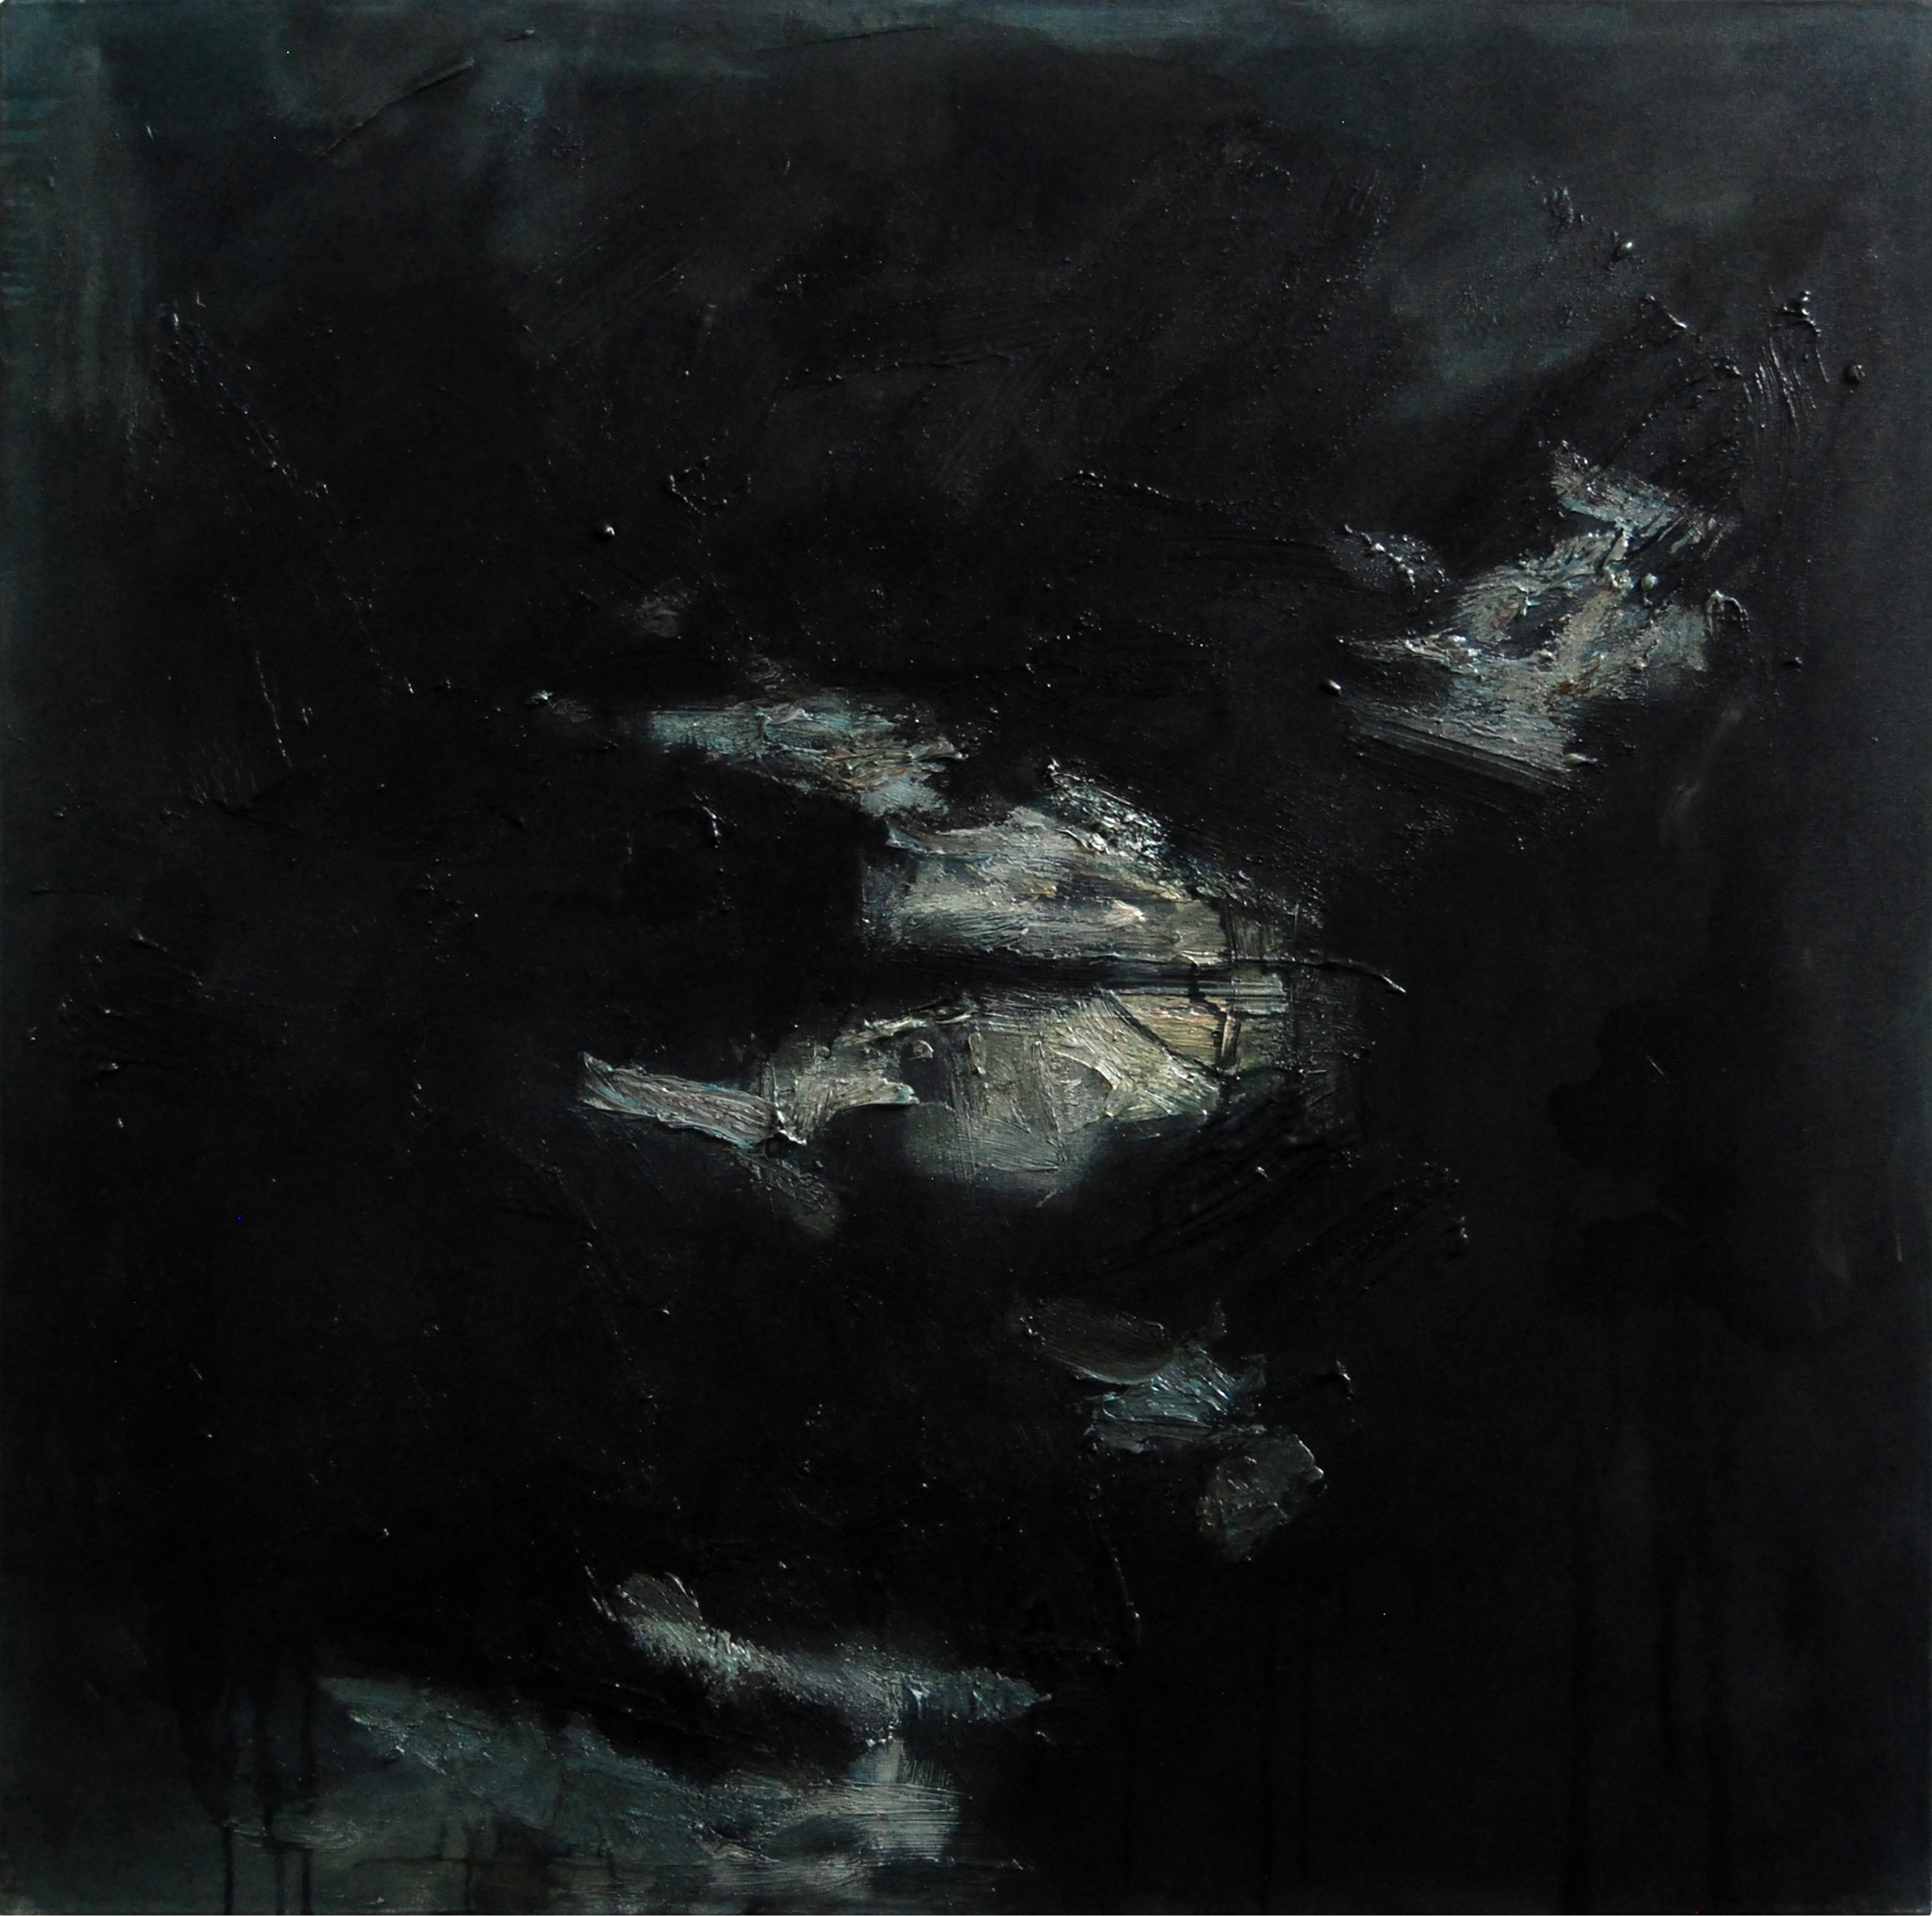 <em>On the way VI</em>. 2010. Oil on canvas. 100x100cm